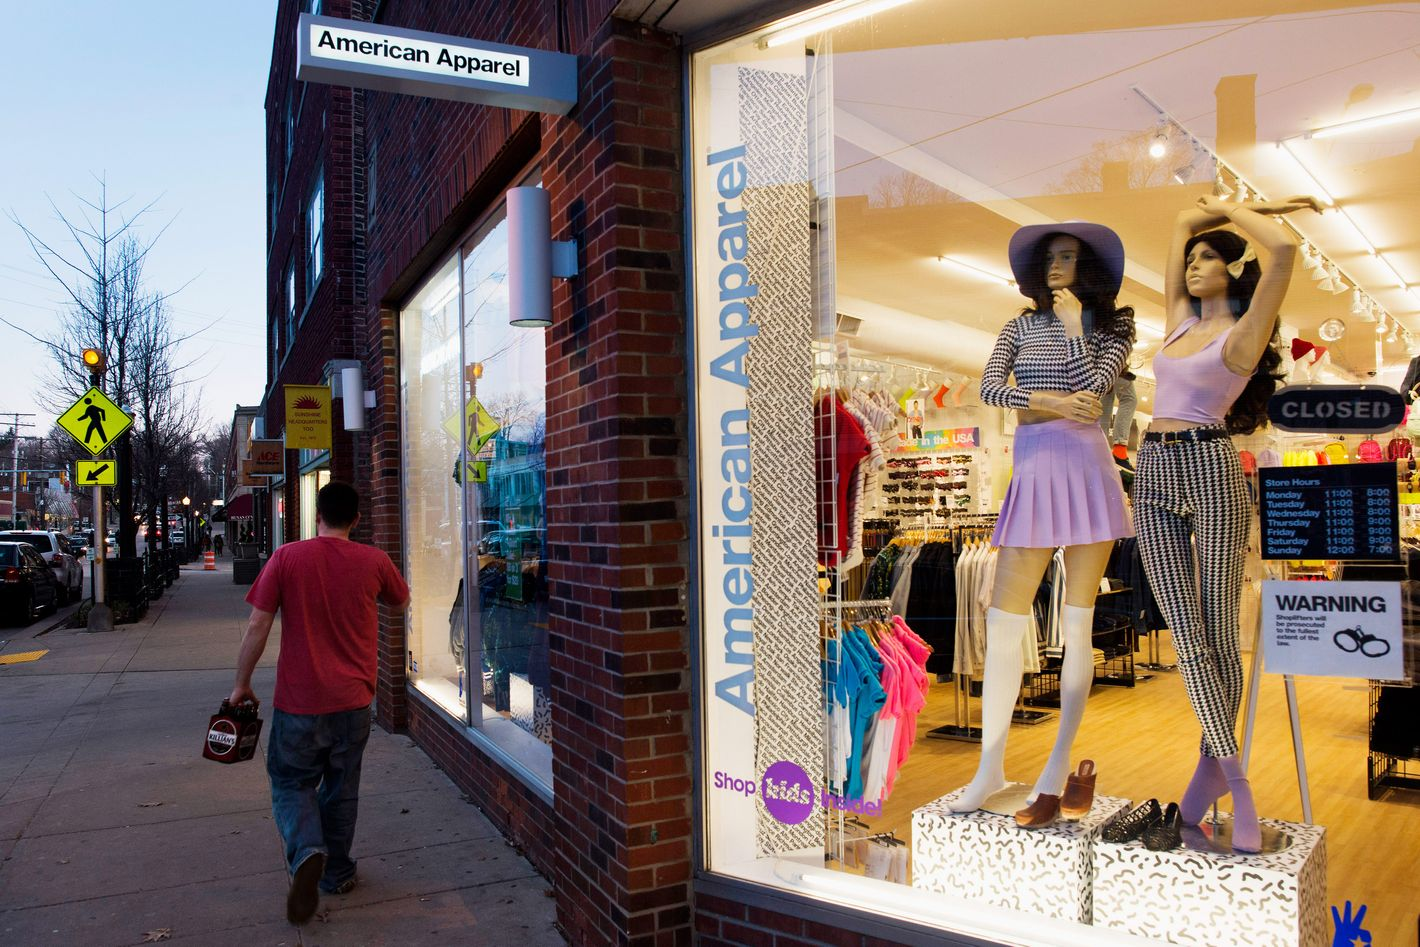 American Apparel Files For Bankruptcy But What Does It Mean American Apparel Files For Bankruptcy But What Does It Mean new photo